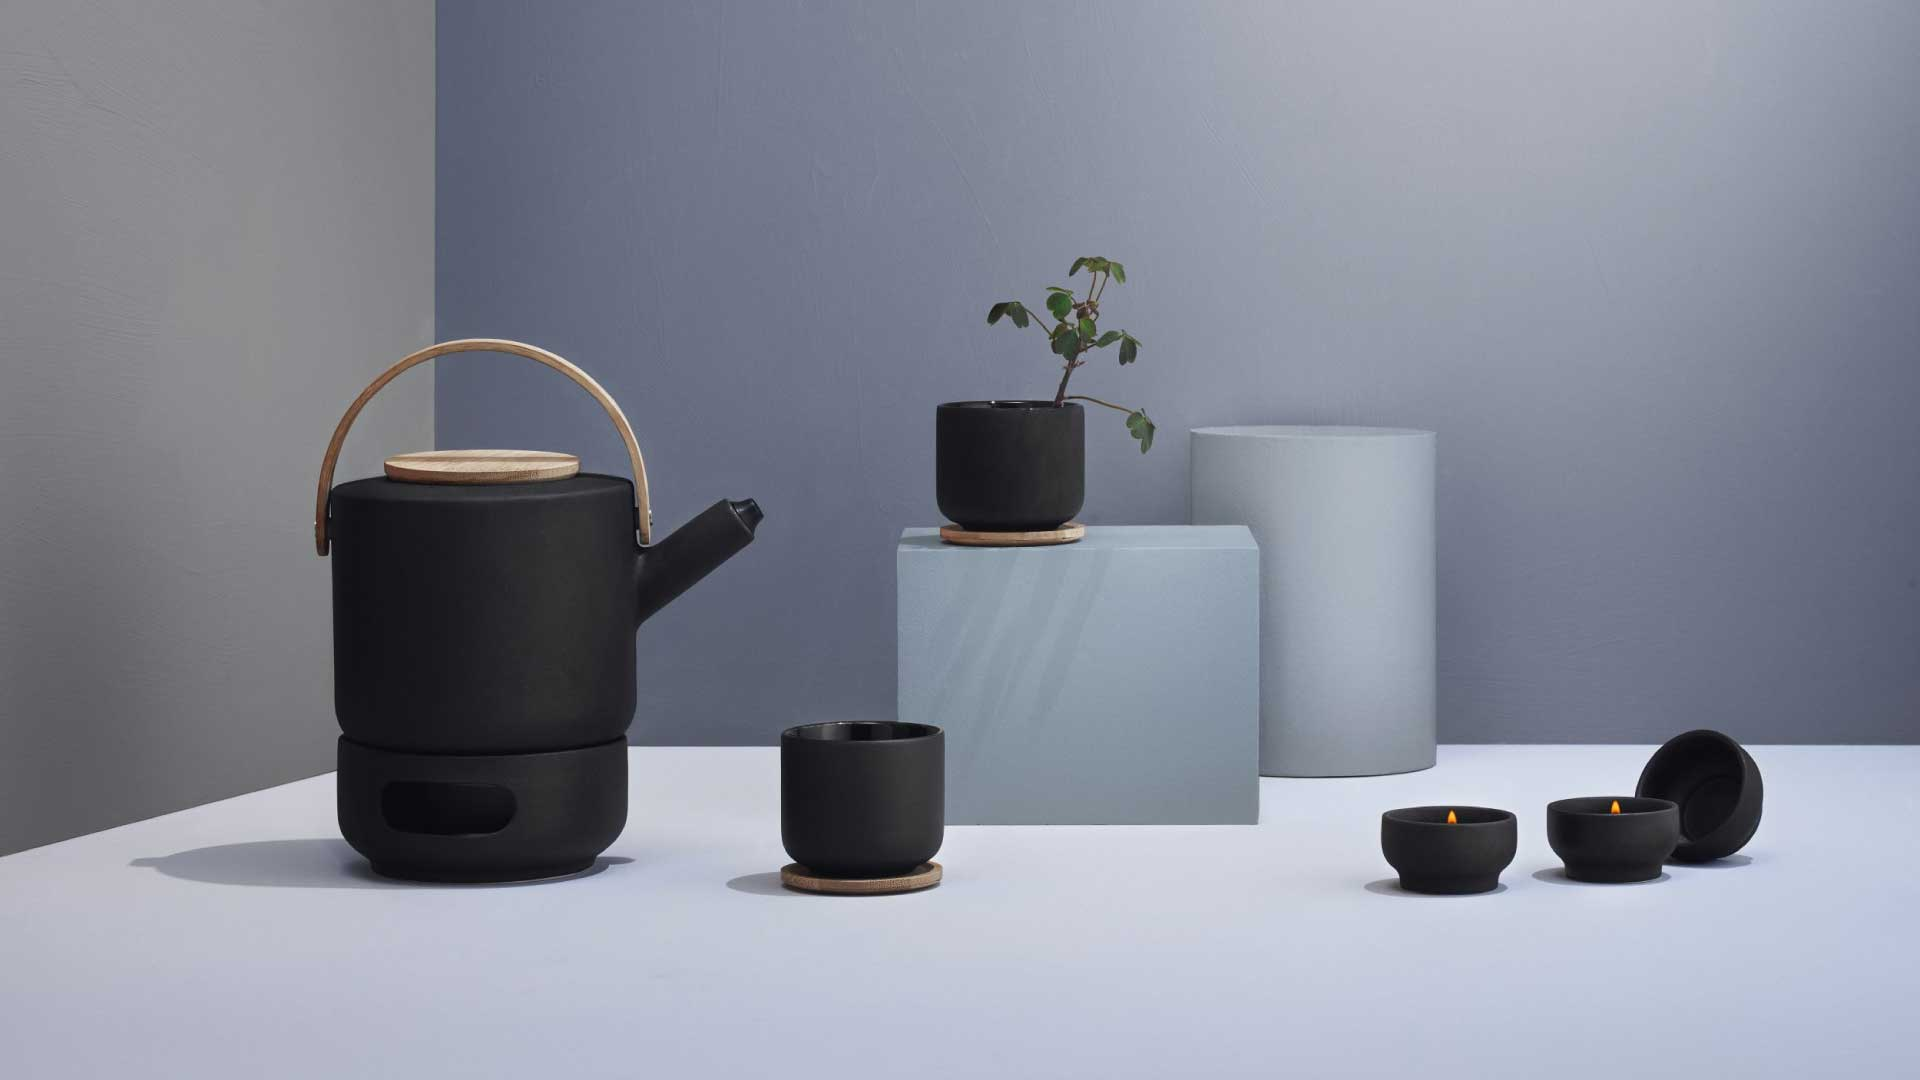 Stelton dealer Friesland